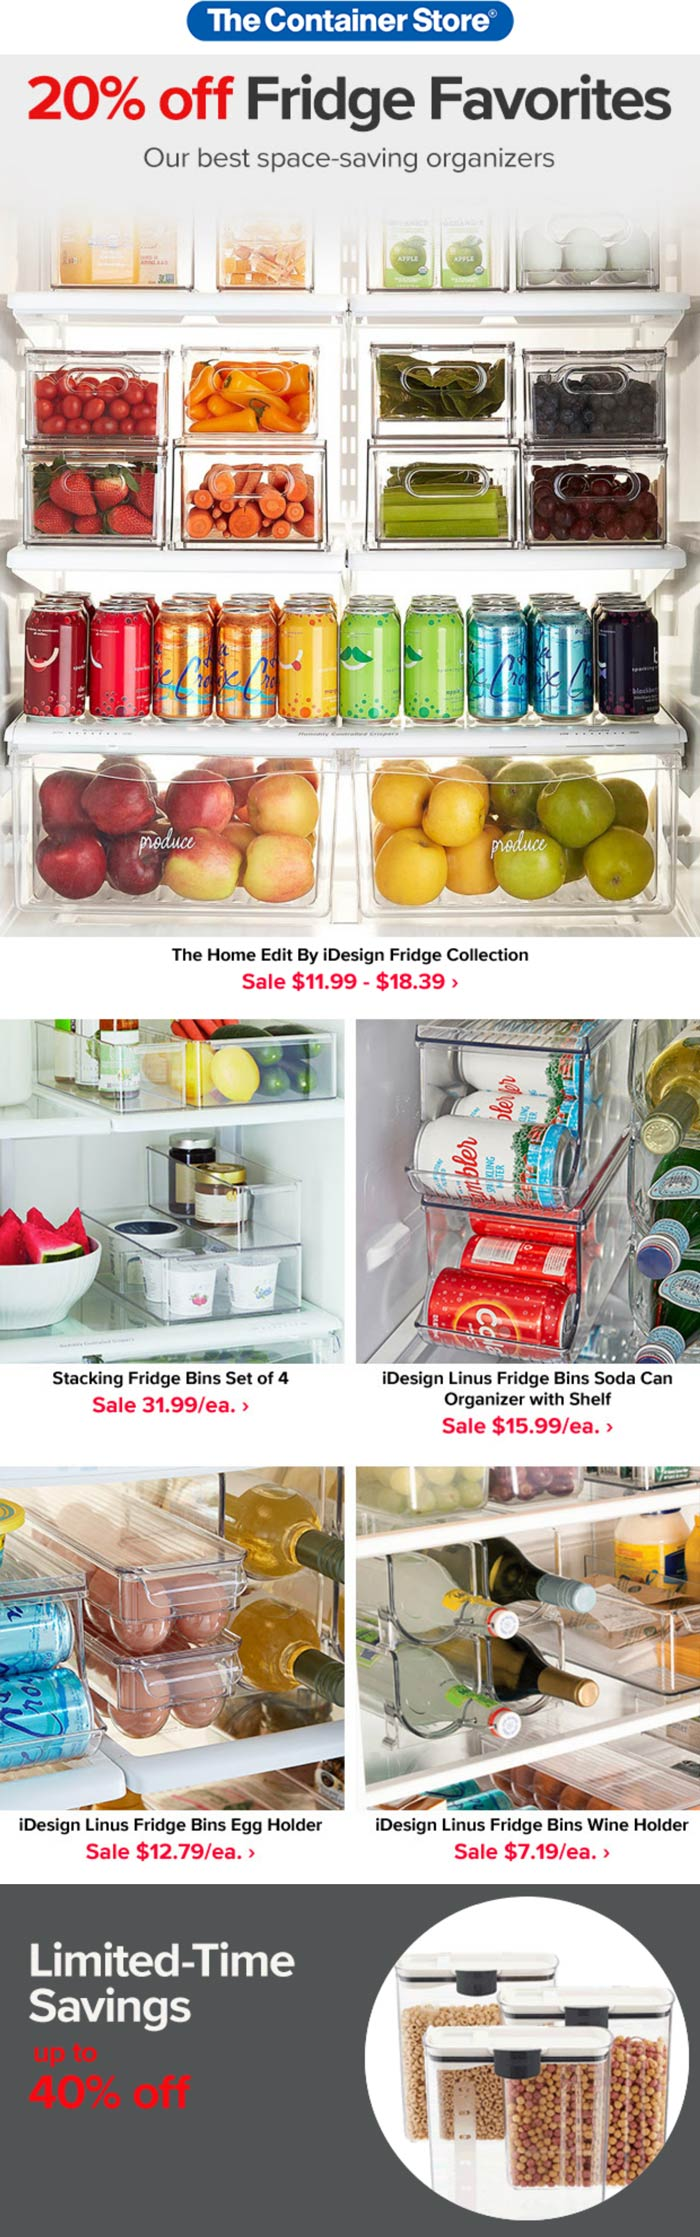 The Container Store stores Coupon  20% off fridge organizers & more at The Container Store #thecontainerstore